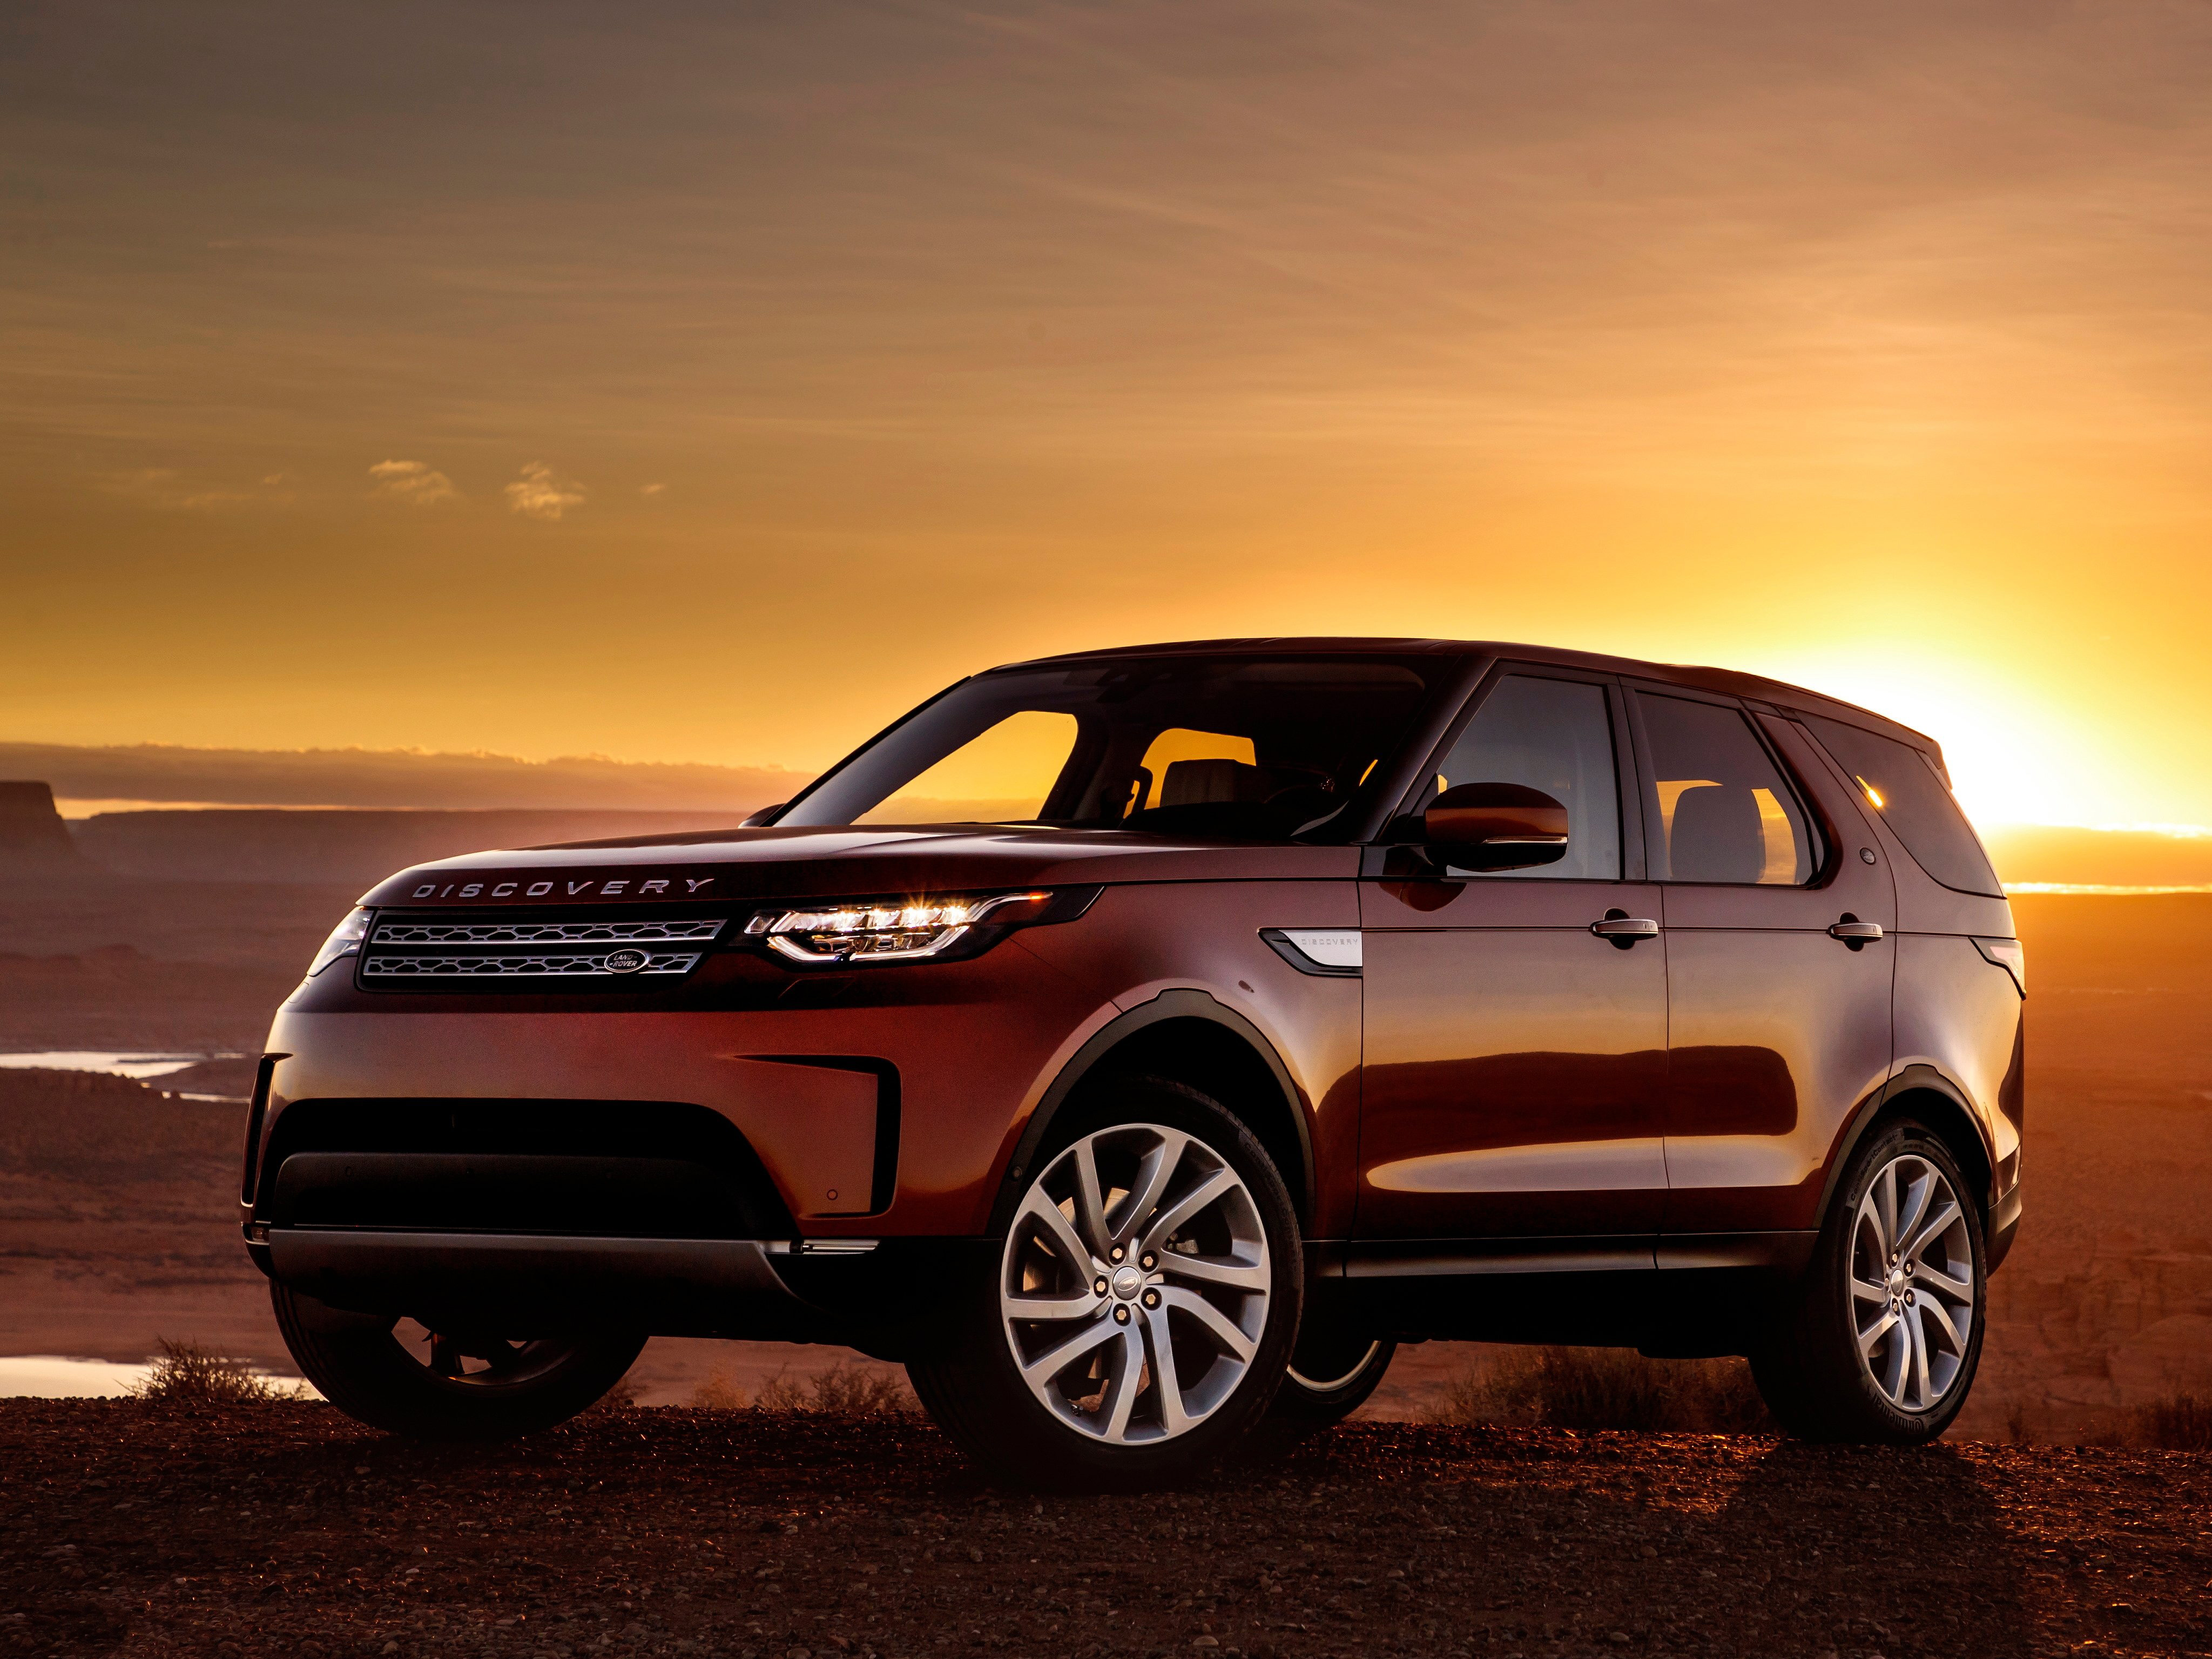 2017 Land Rover Discovery, HD Cars, 4k Wallpapers, Images ...